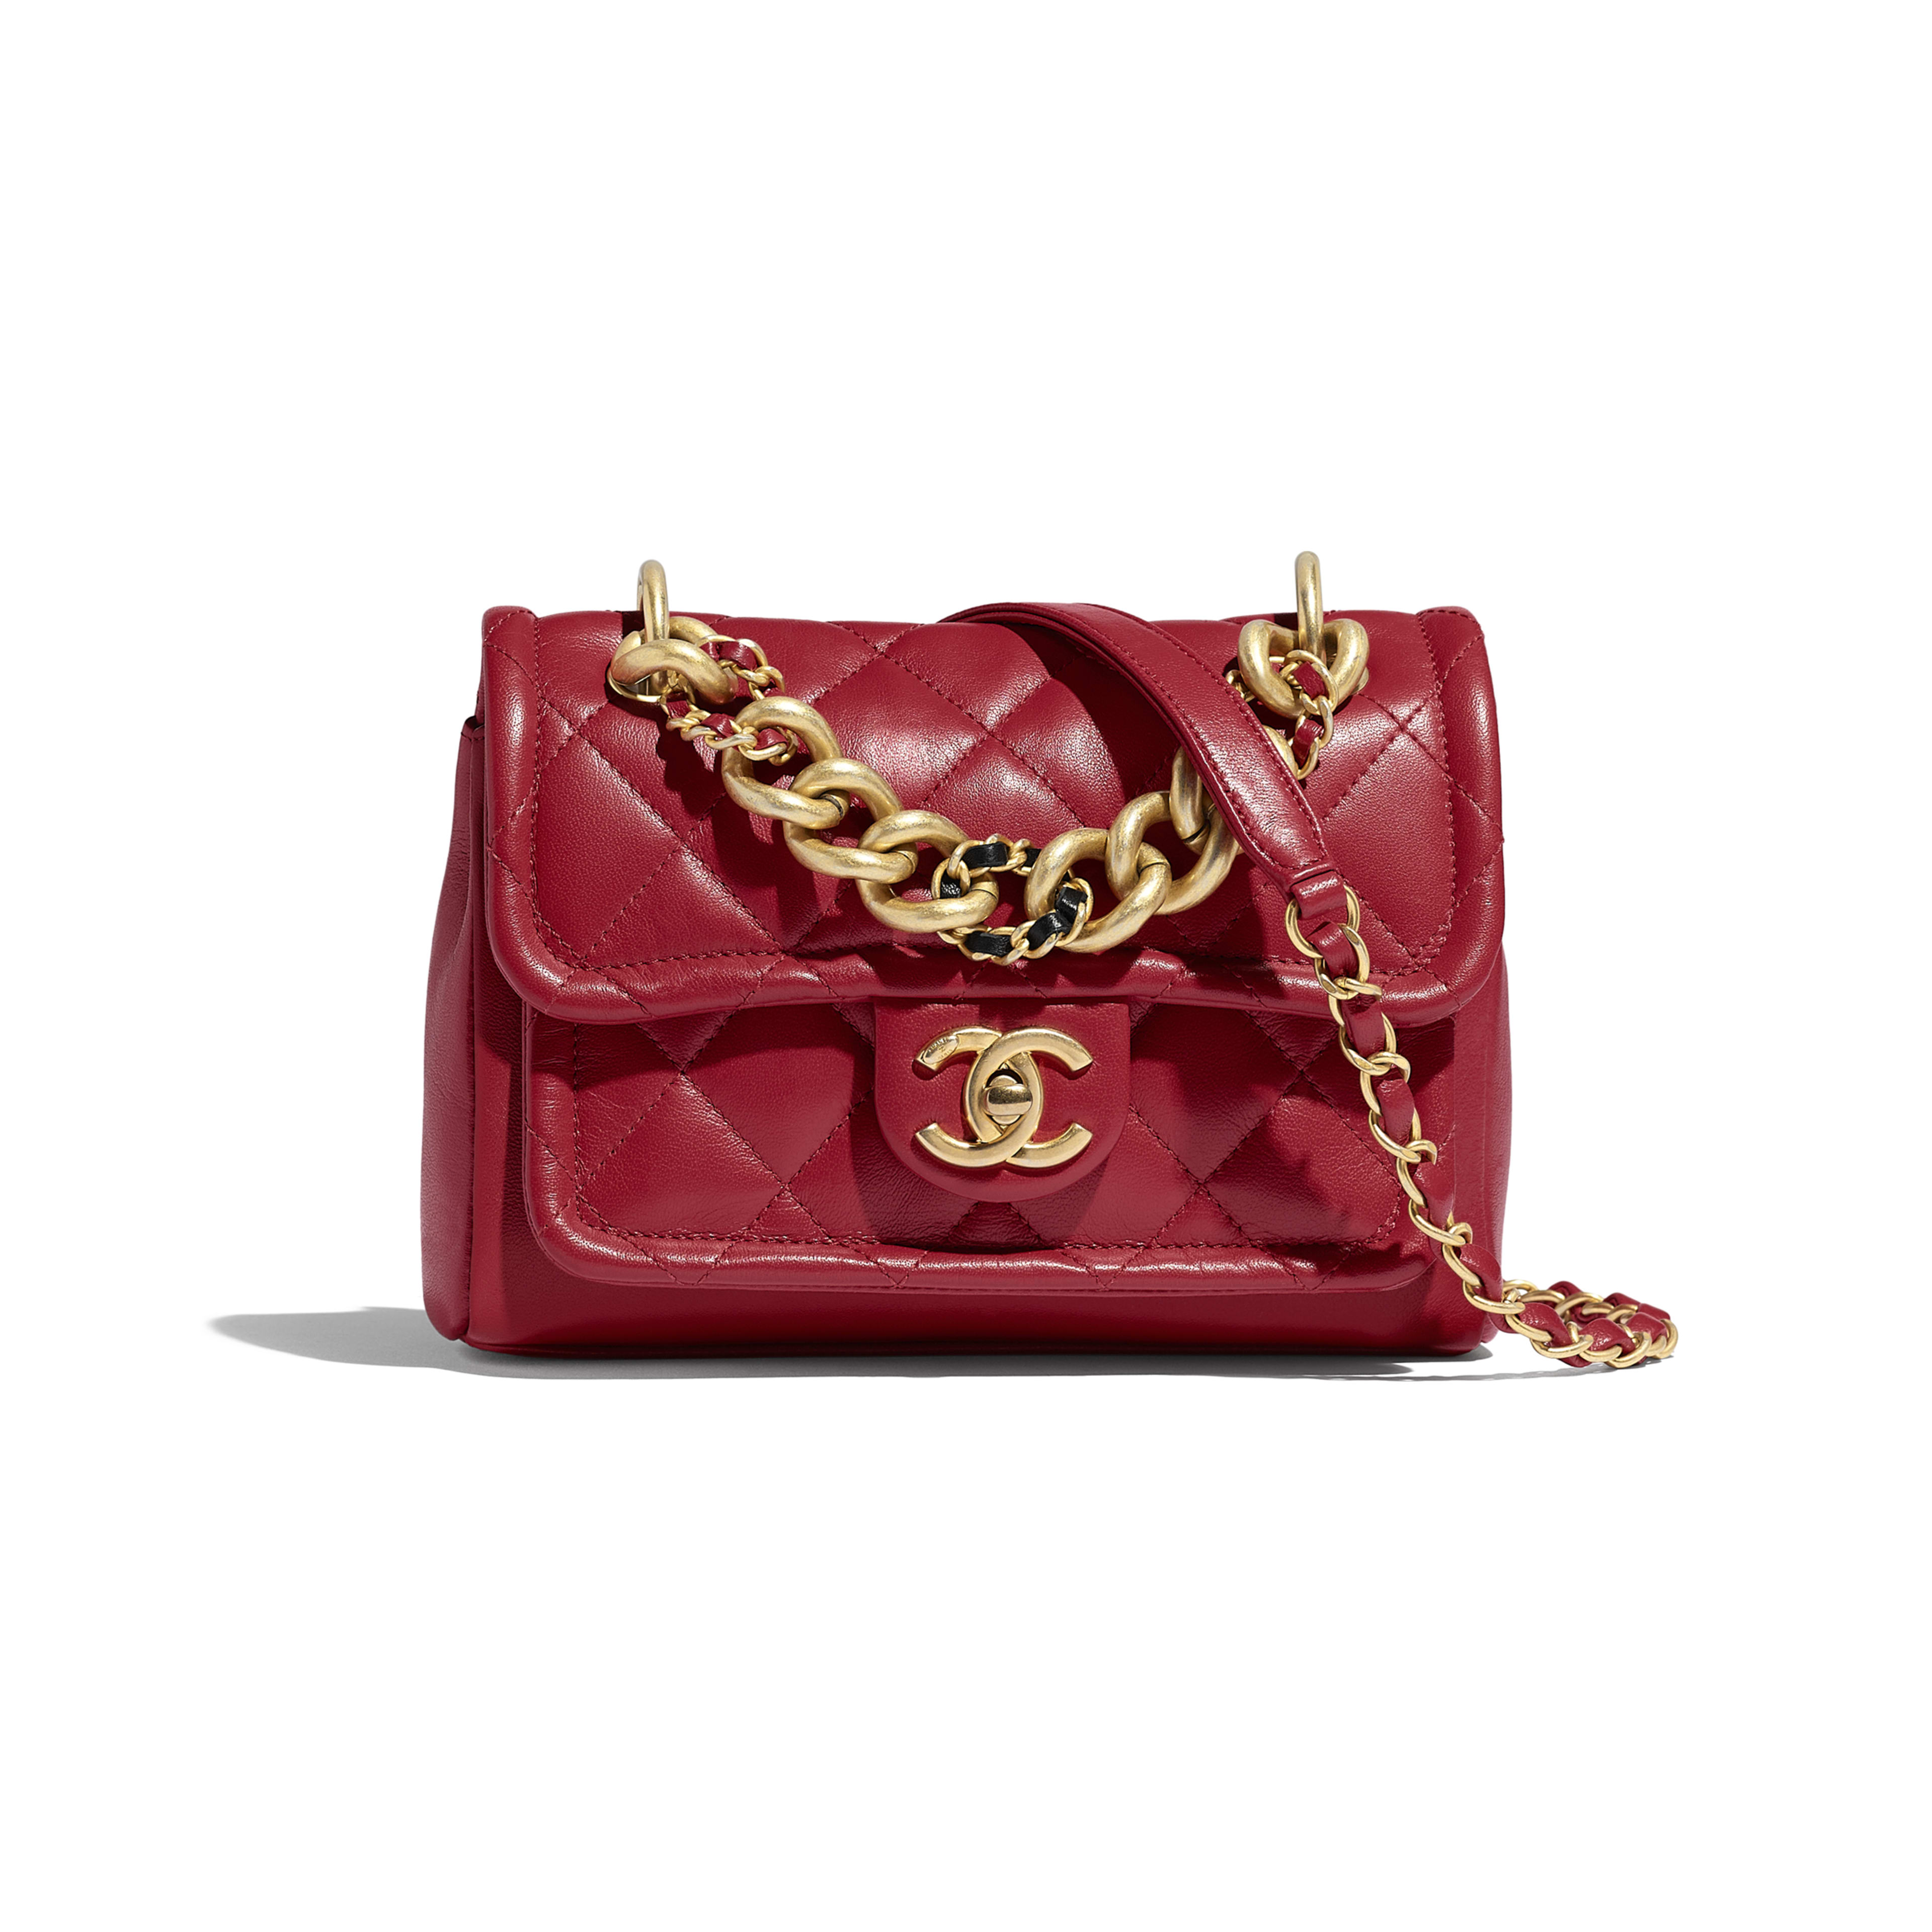 Flap Bag - Red - Lambskin - Default view - see full sized version